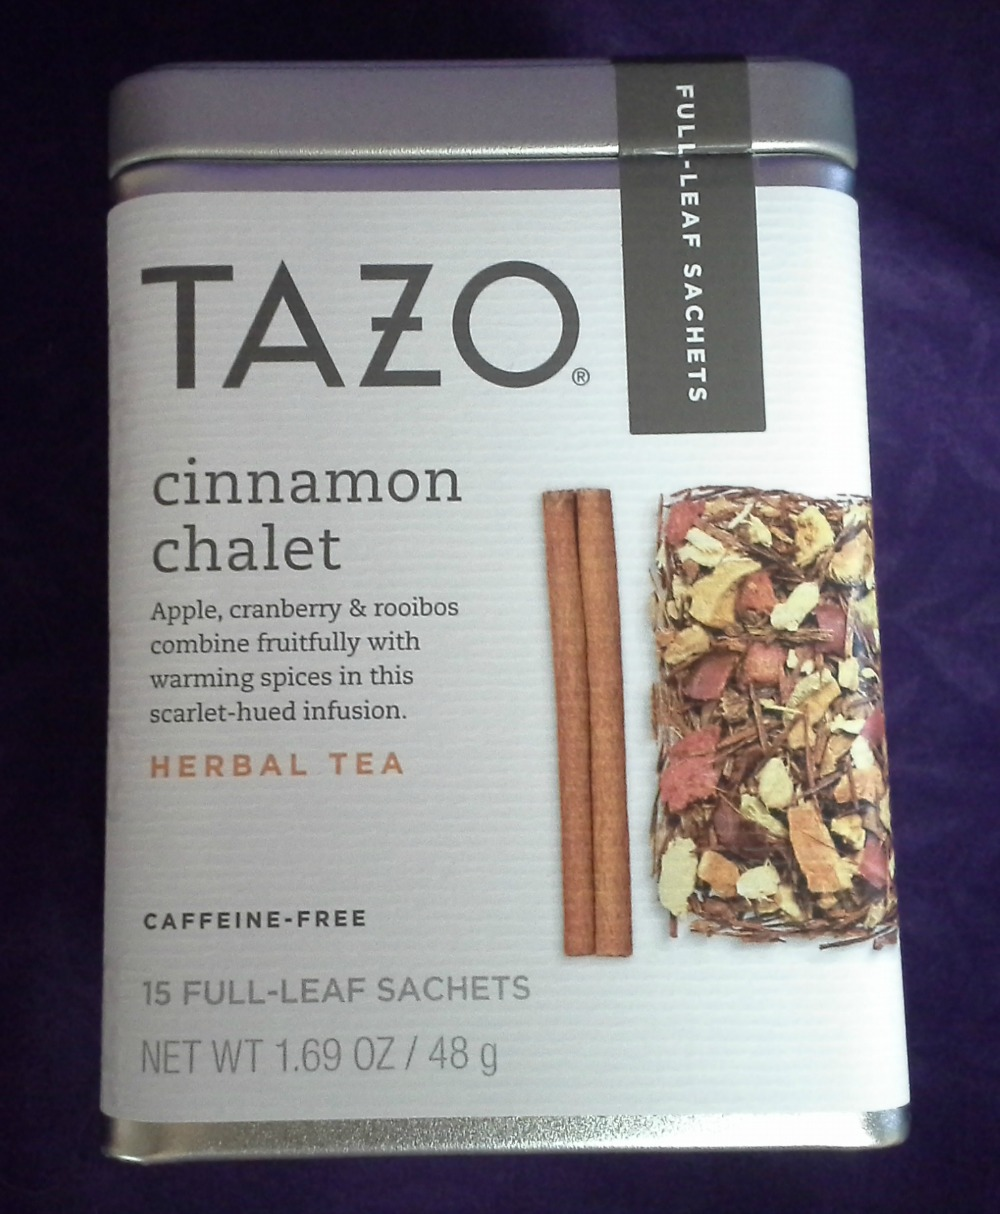 Tazo Cinnamon Chalet Stash Pumpkin Spice Decaf © 2013 - 2015 Susan C. Fix All Rights Reserved ABlueSquash.com